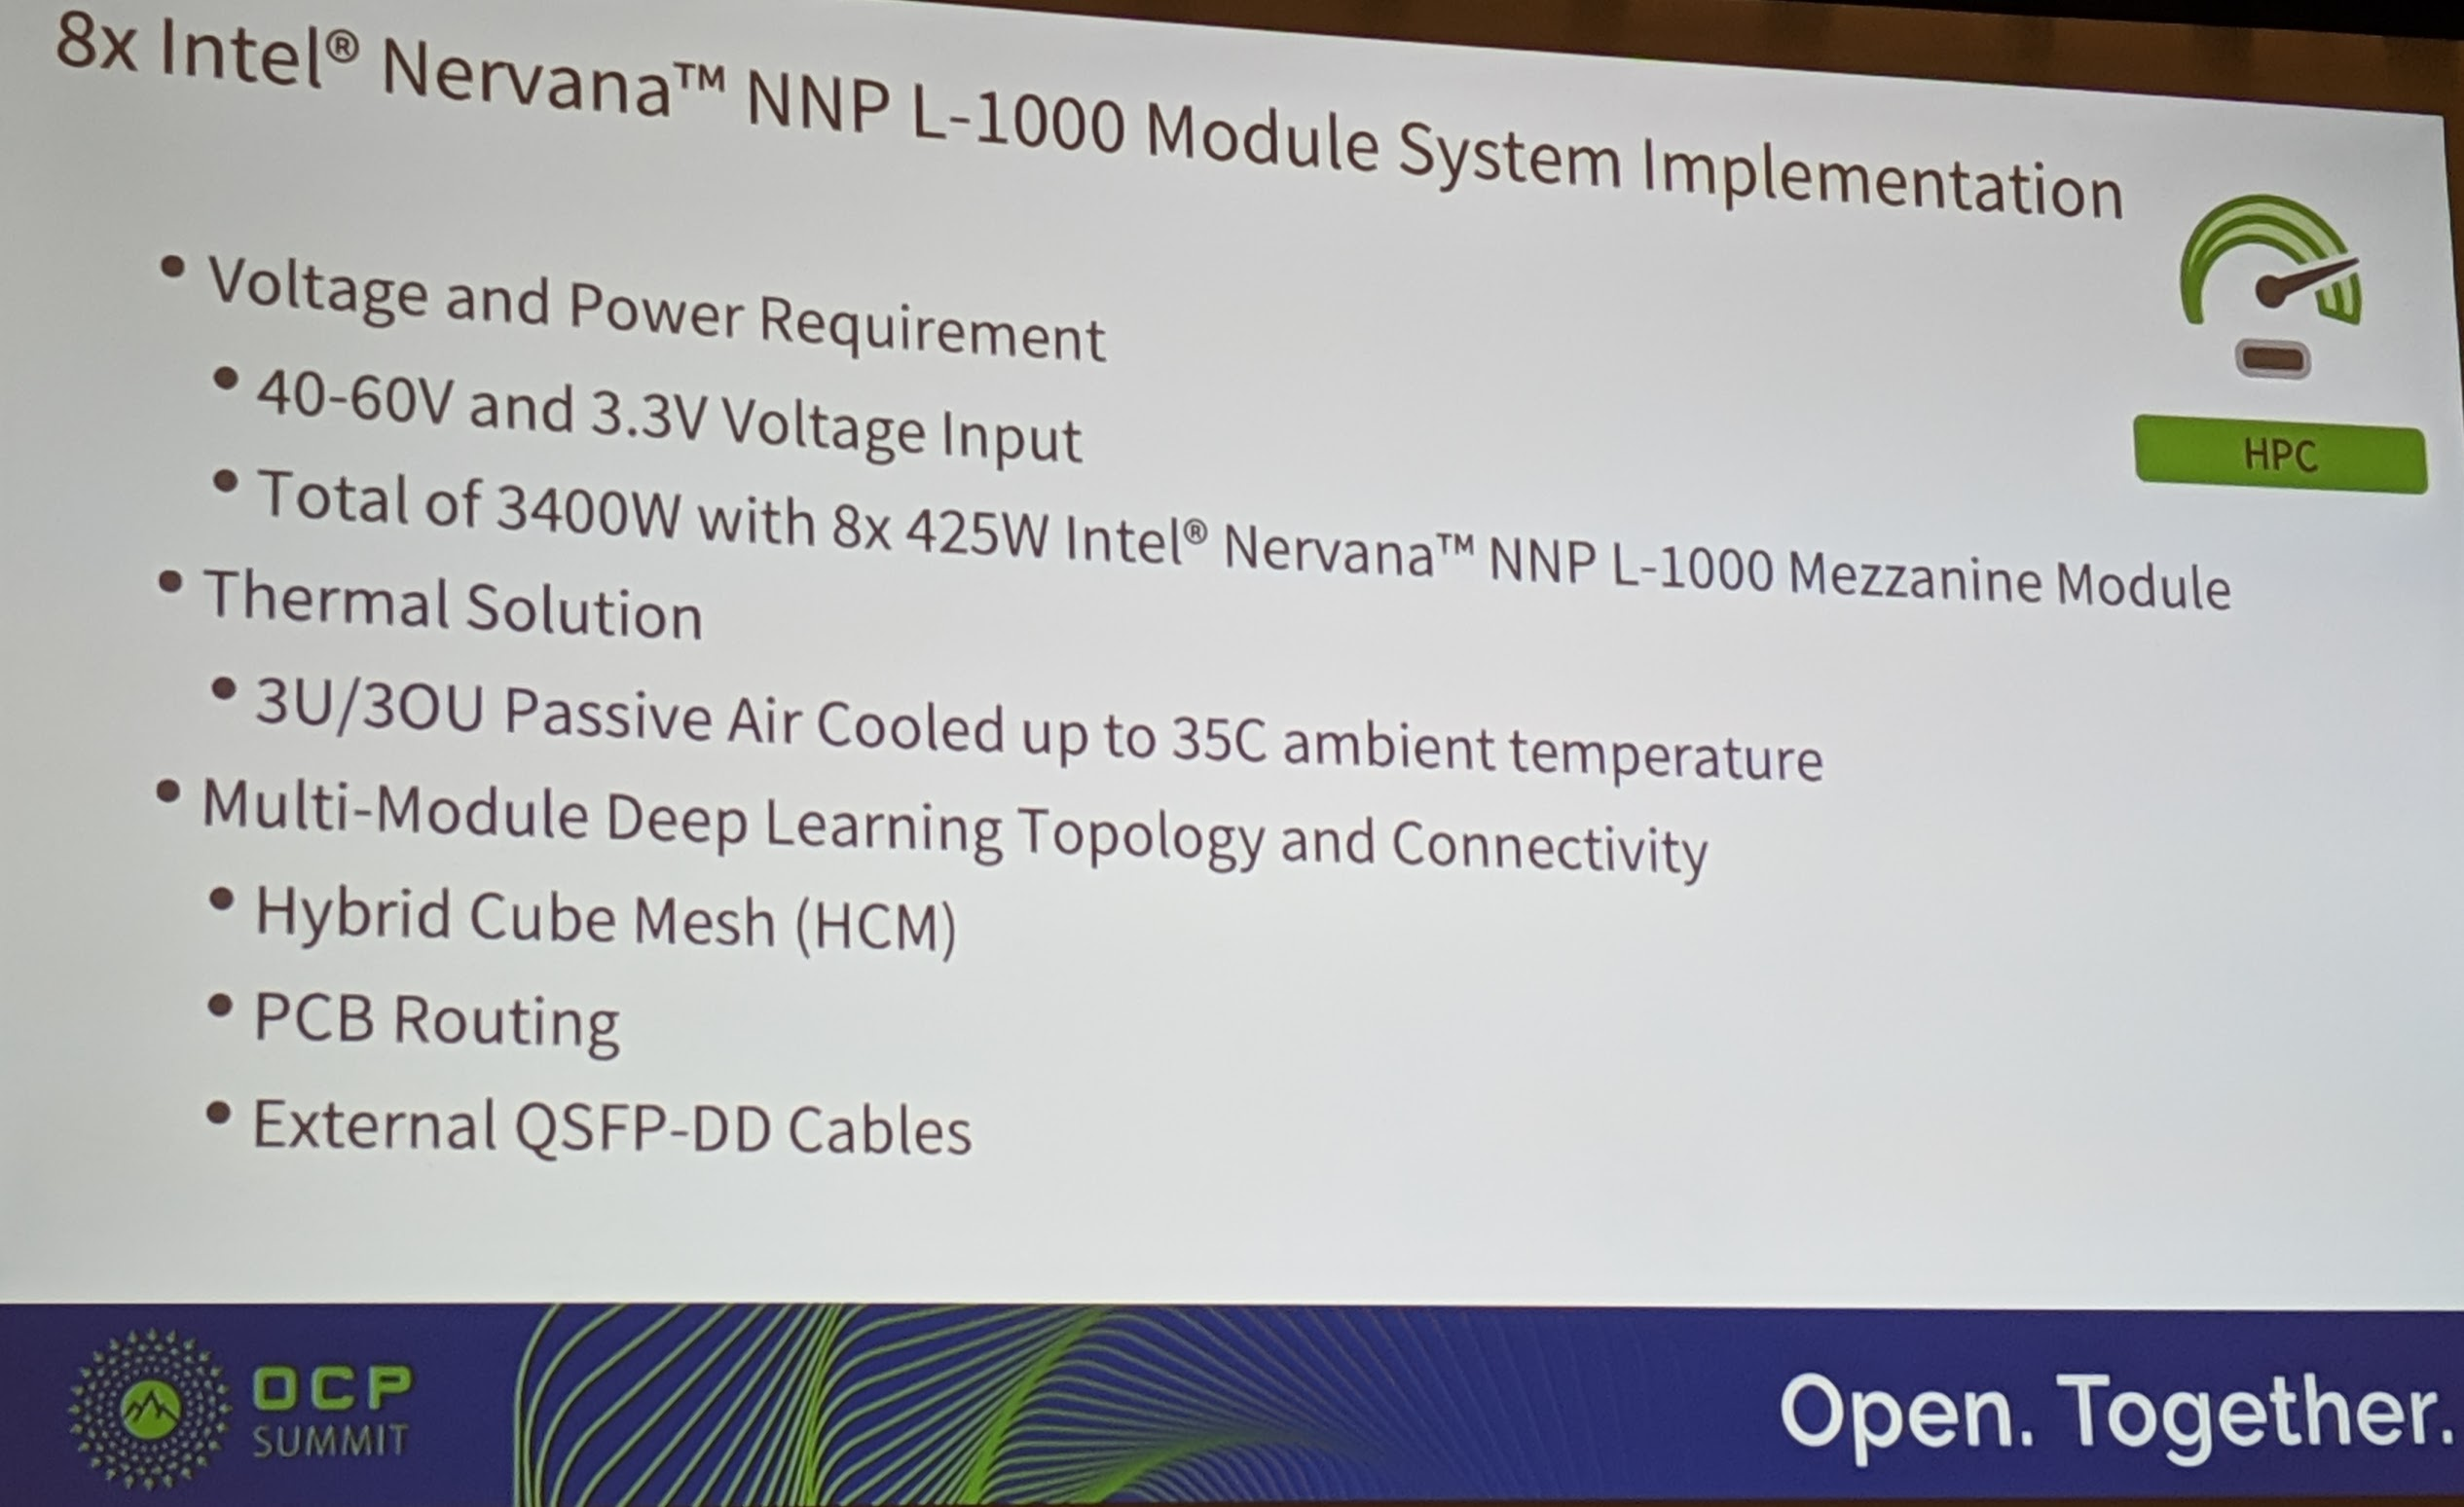 8x Intel Nervana NNP L 1000 System Implementation